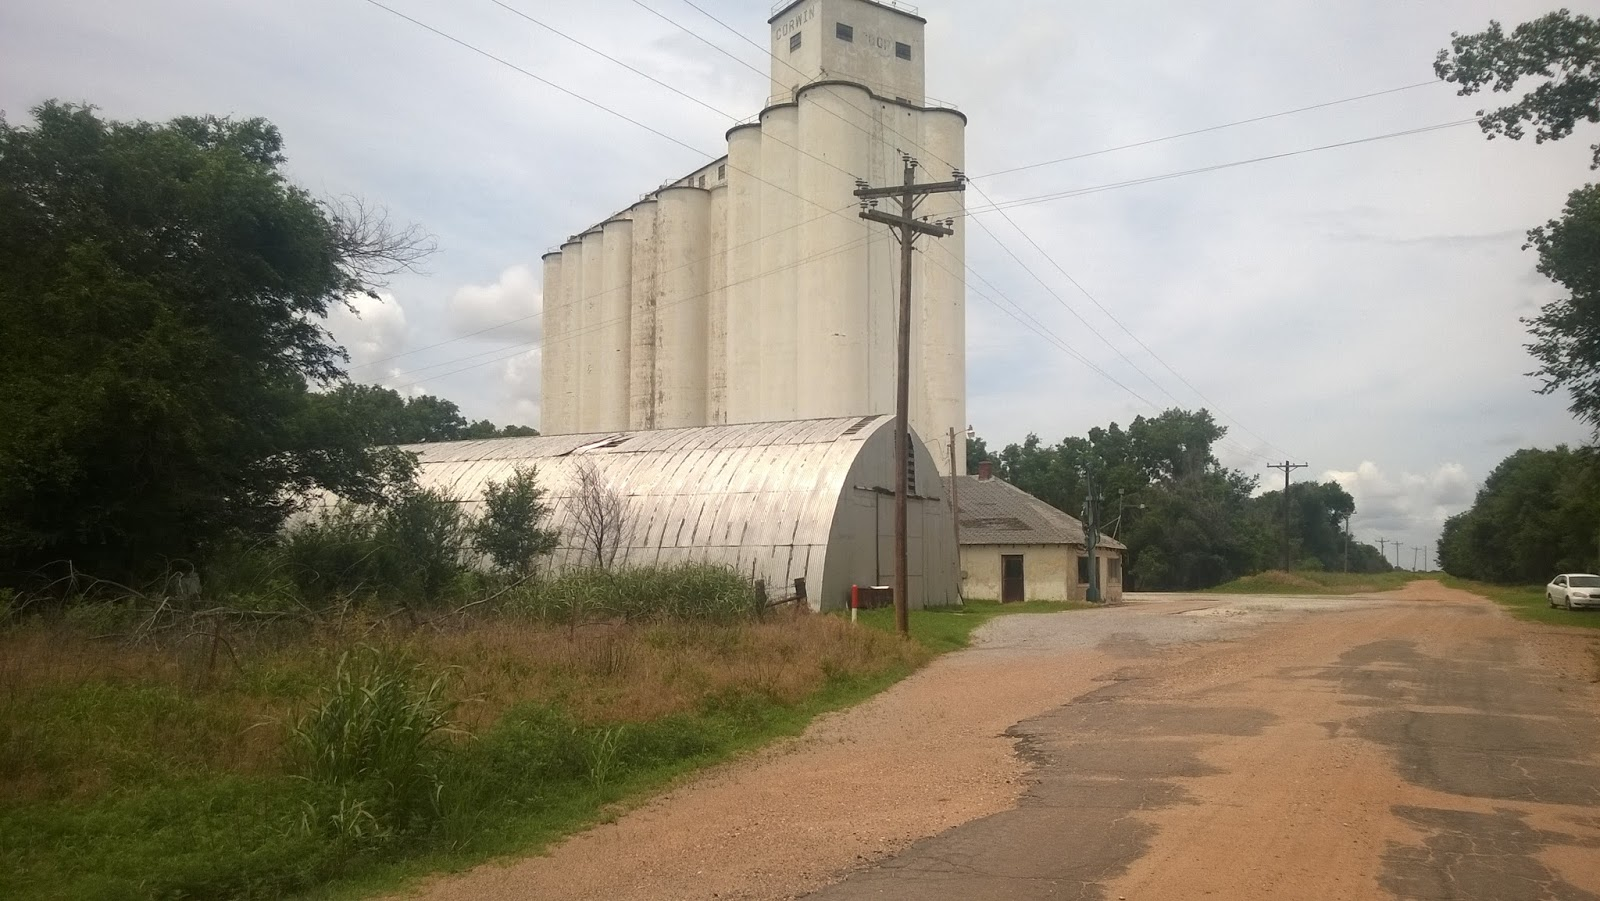 Kansas harper county attica - To Read About Corwin Visit Our Website Kansasagland Com Here S A Link To The Story And Photos